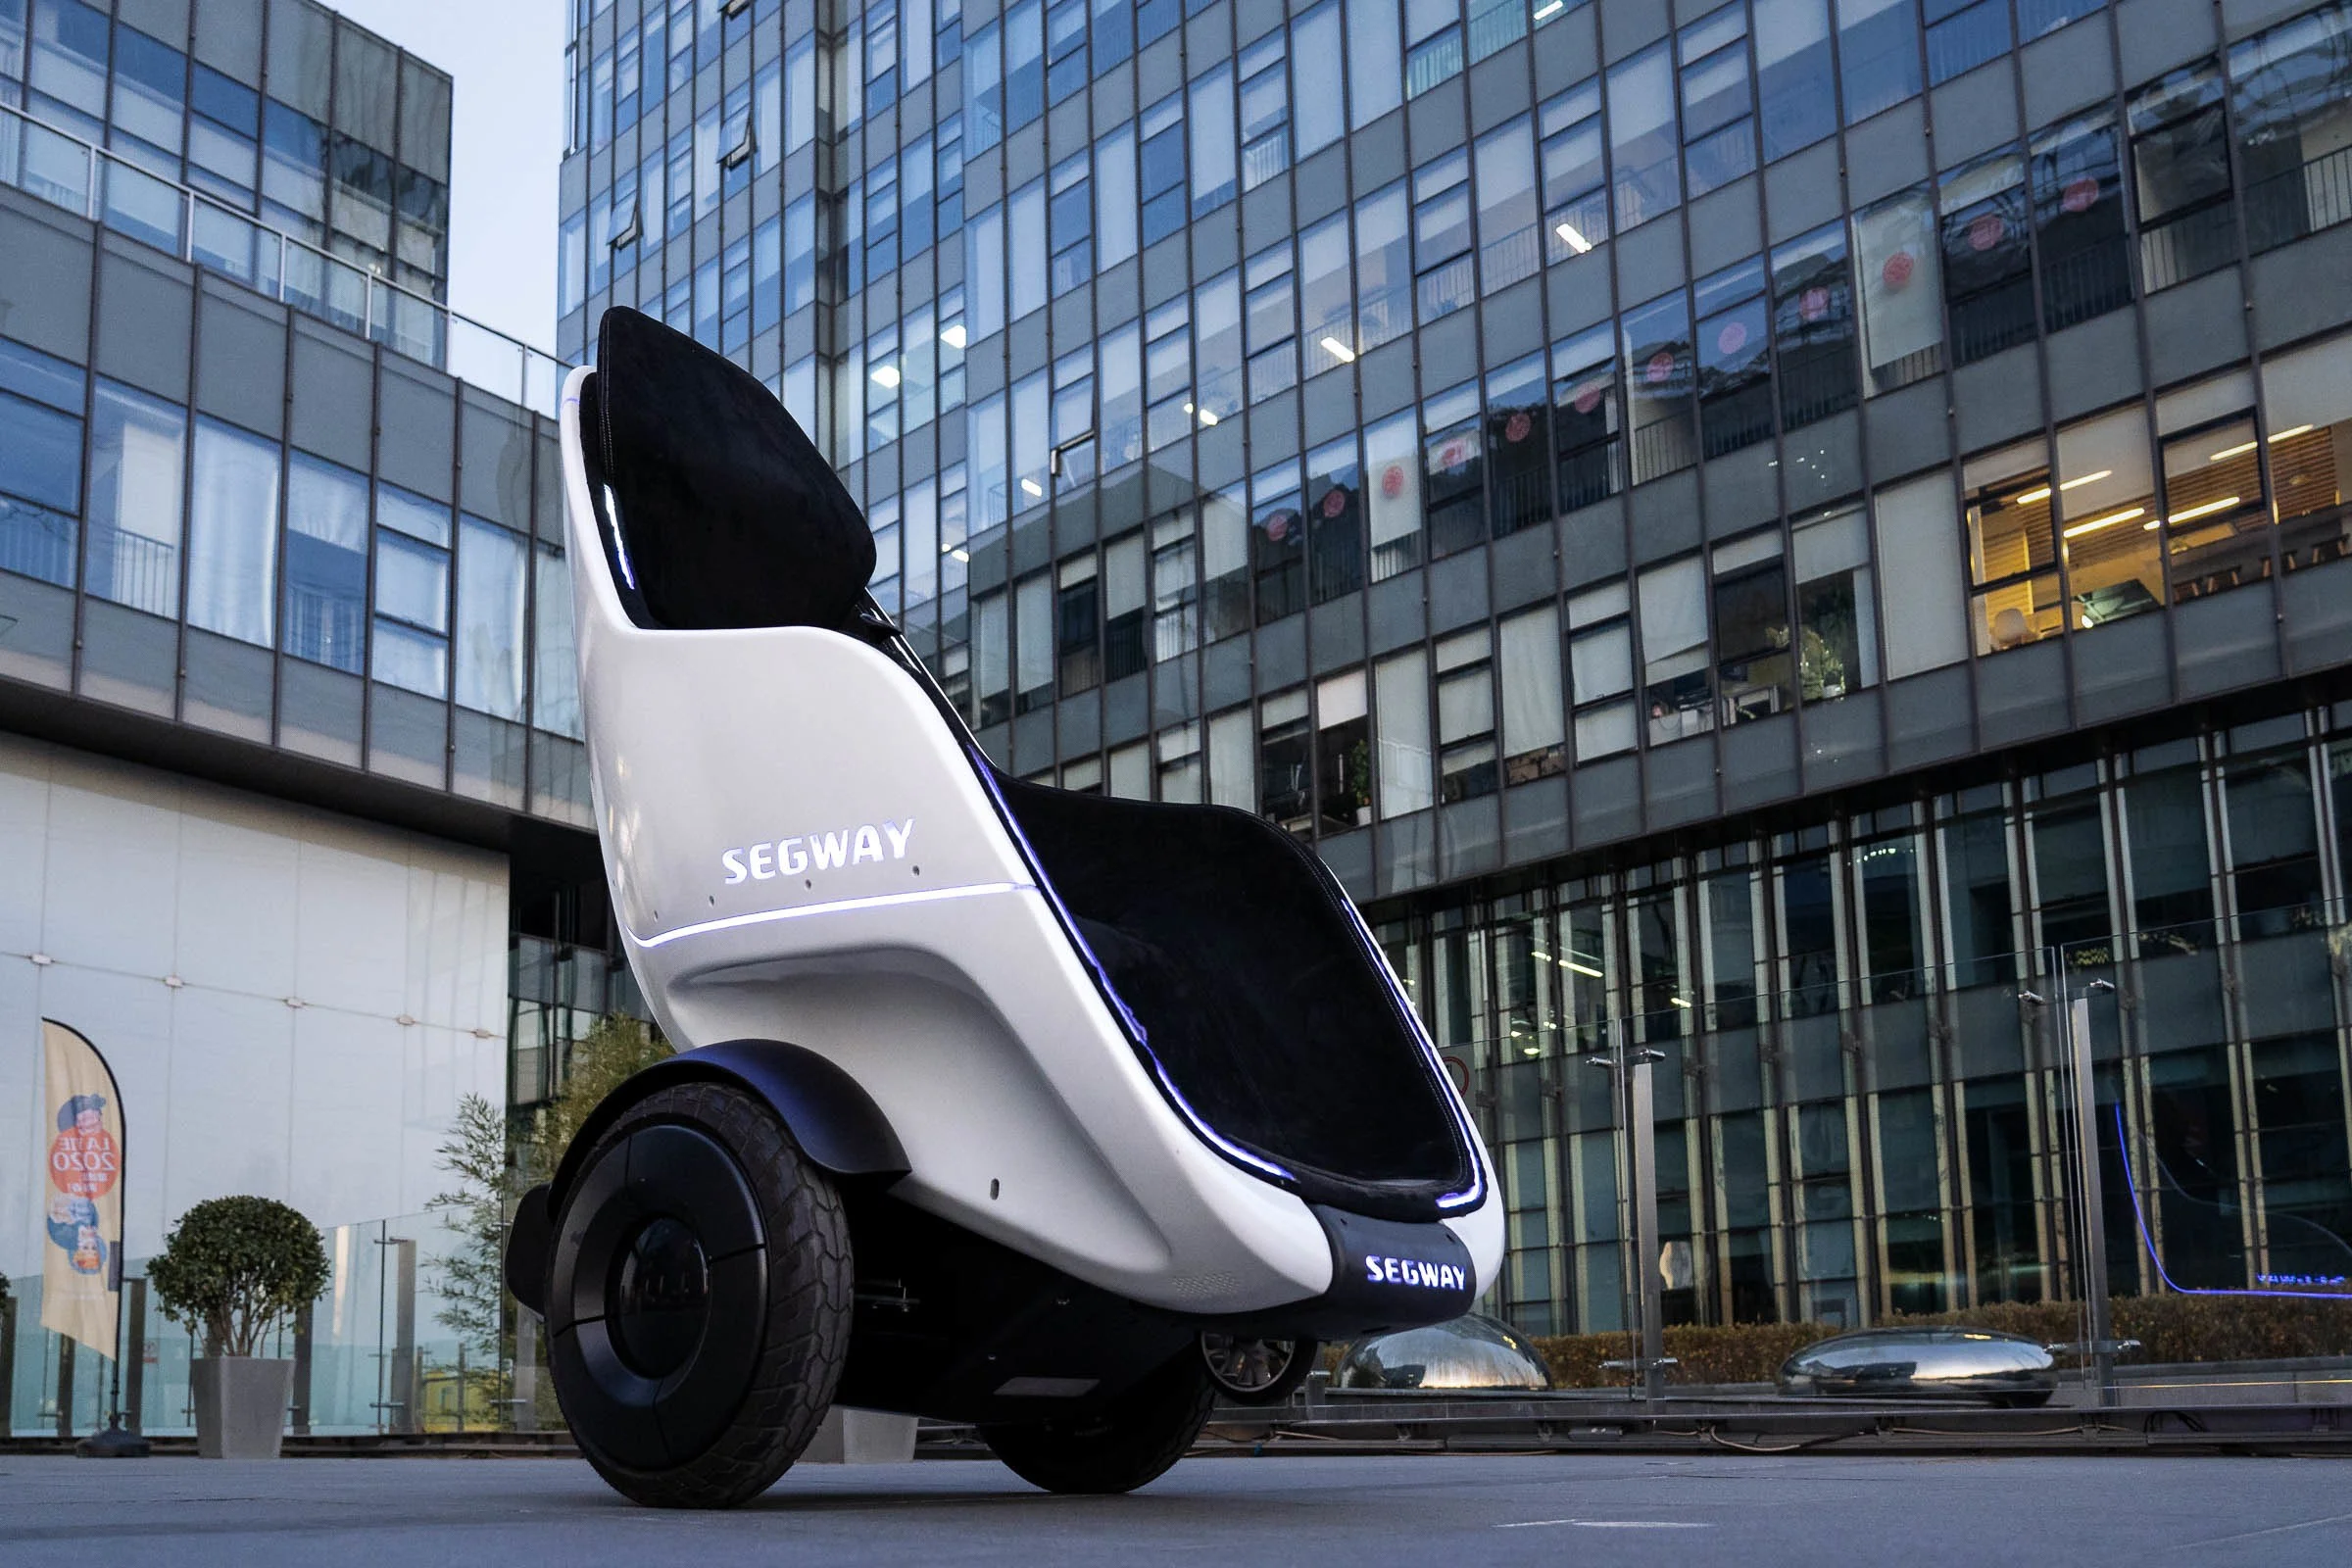 Shock coming! Segway-Ninebot introduces electric scooters and self-balancing wheelchairs with cruise control